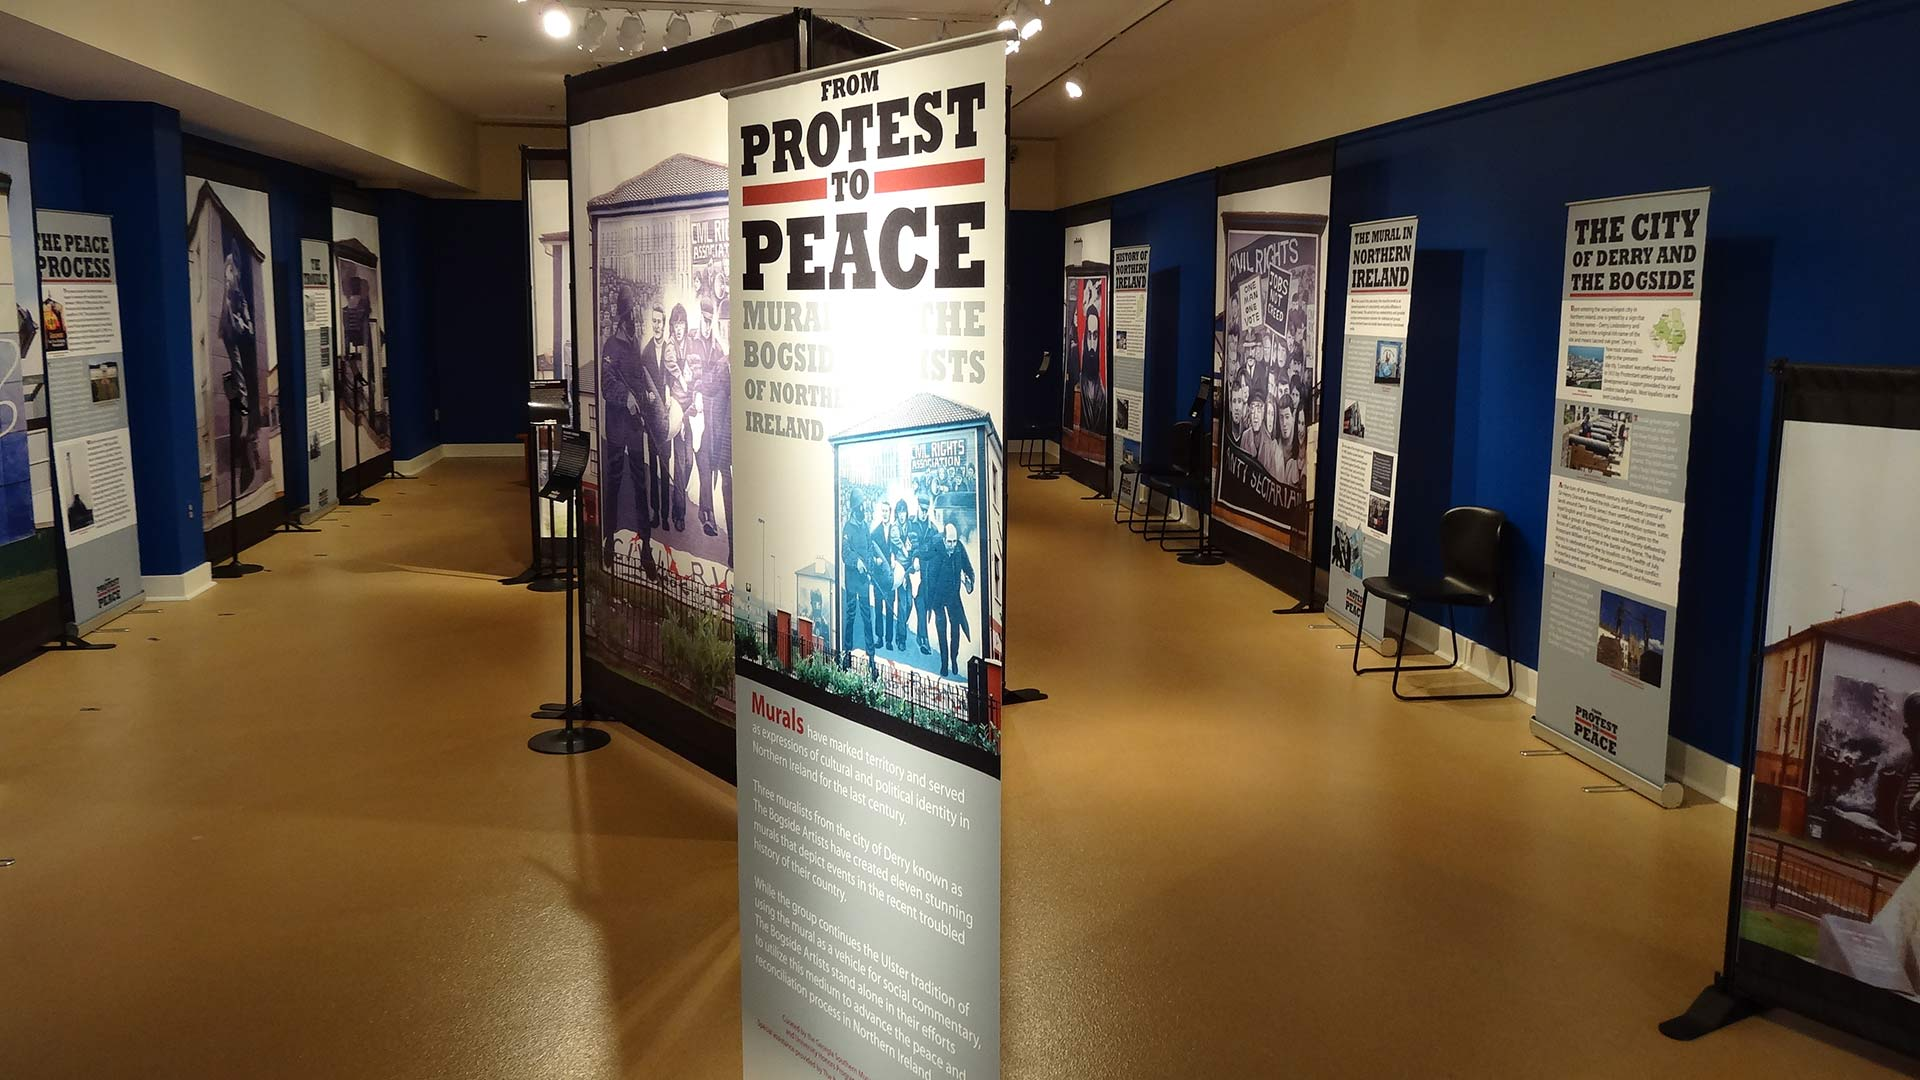 from protest to peace gallery overview, full of stand posters